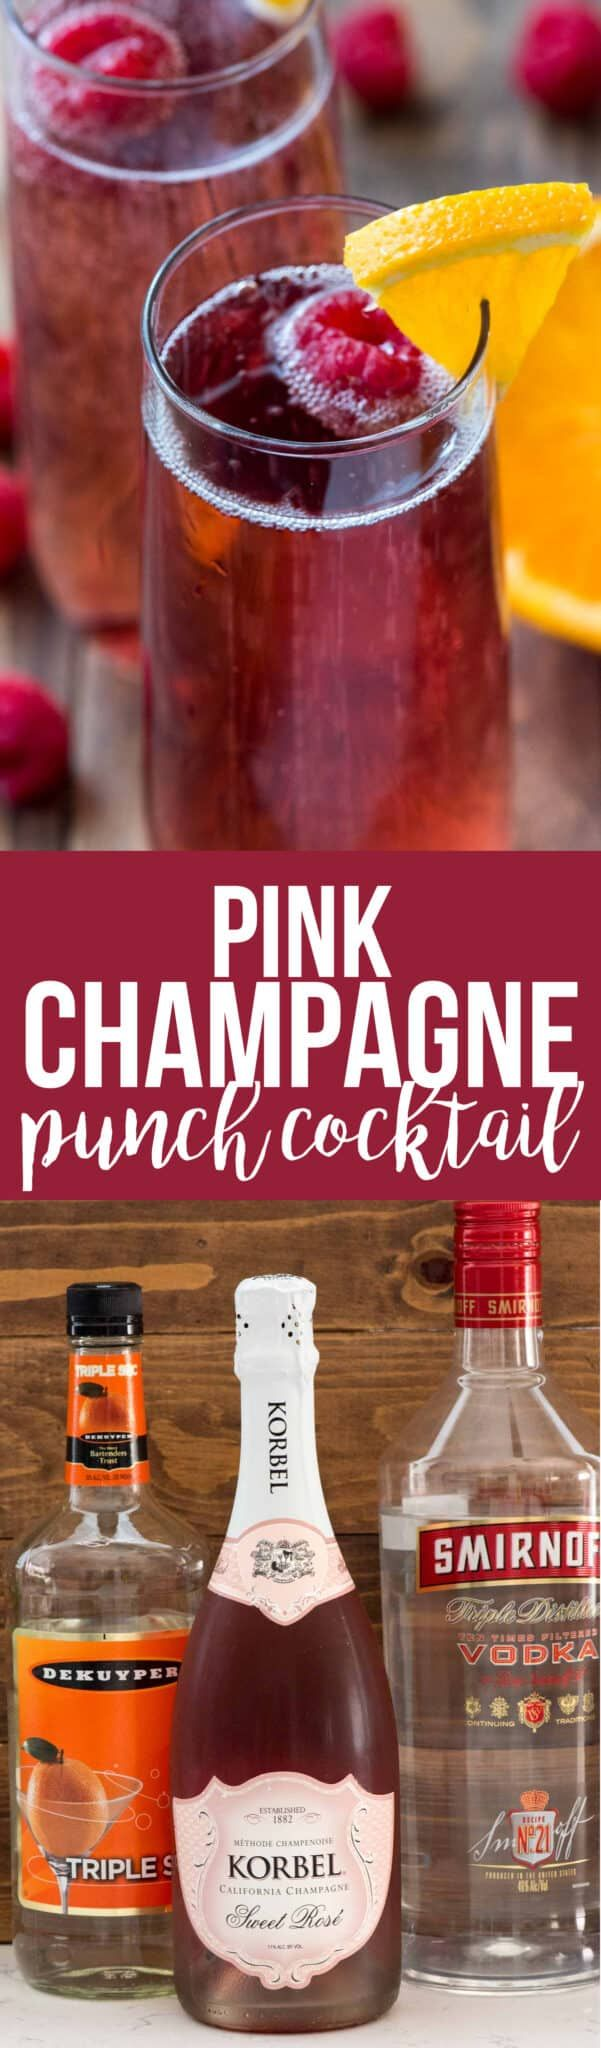 5 Minute Pink Champagne Punch Cocktail Crazy For Crust Recipe In 2020 Champagne Punch Pink Champagne Punch Punch Cocktails